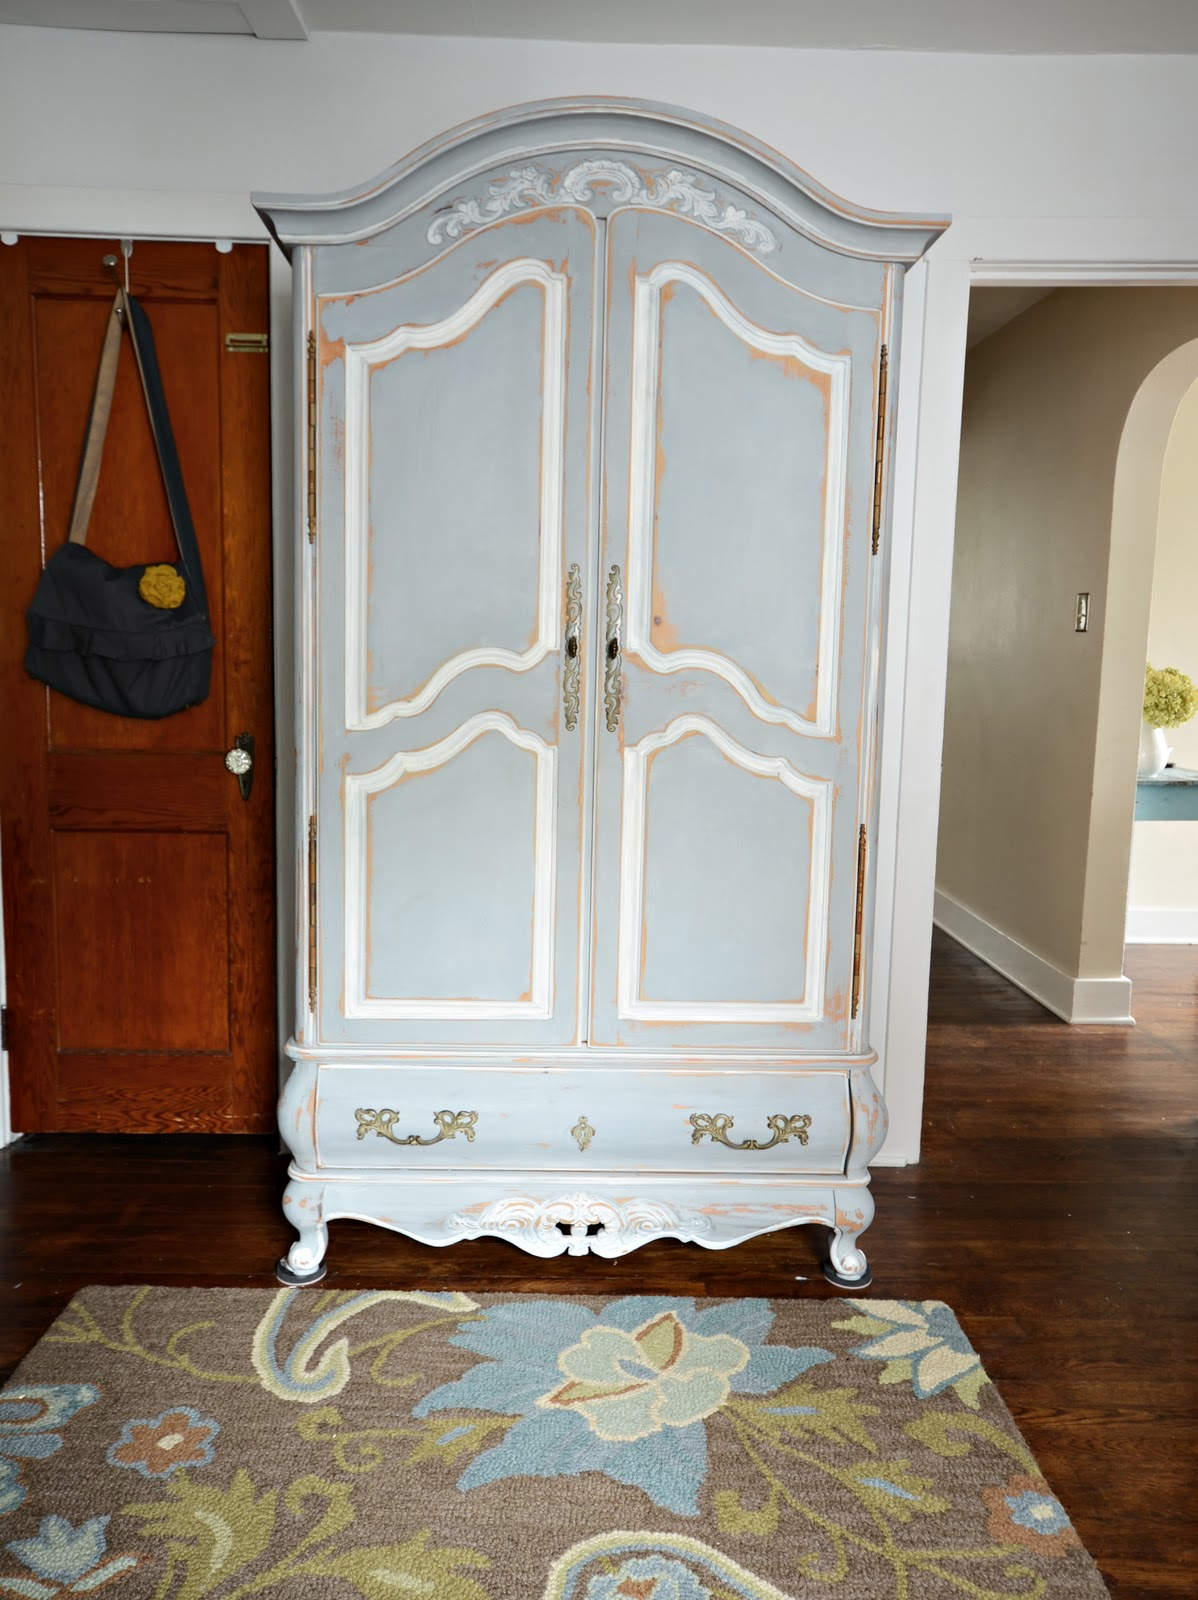 ... The Pine Armoire And Then Painted It In A Mixture Of ASCP Paris Gray  And Louis Blue. I Then Painted The Details In Old White, Distressed The  Edges And ...